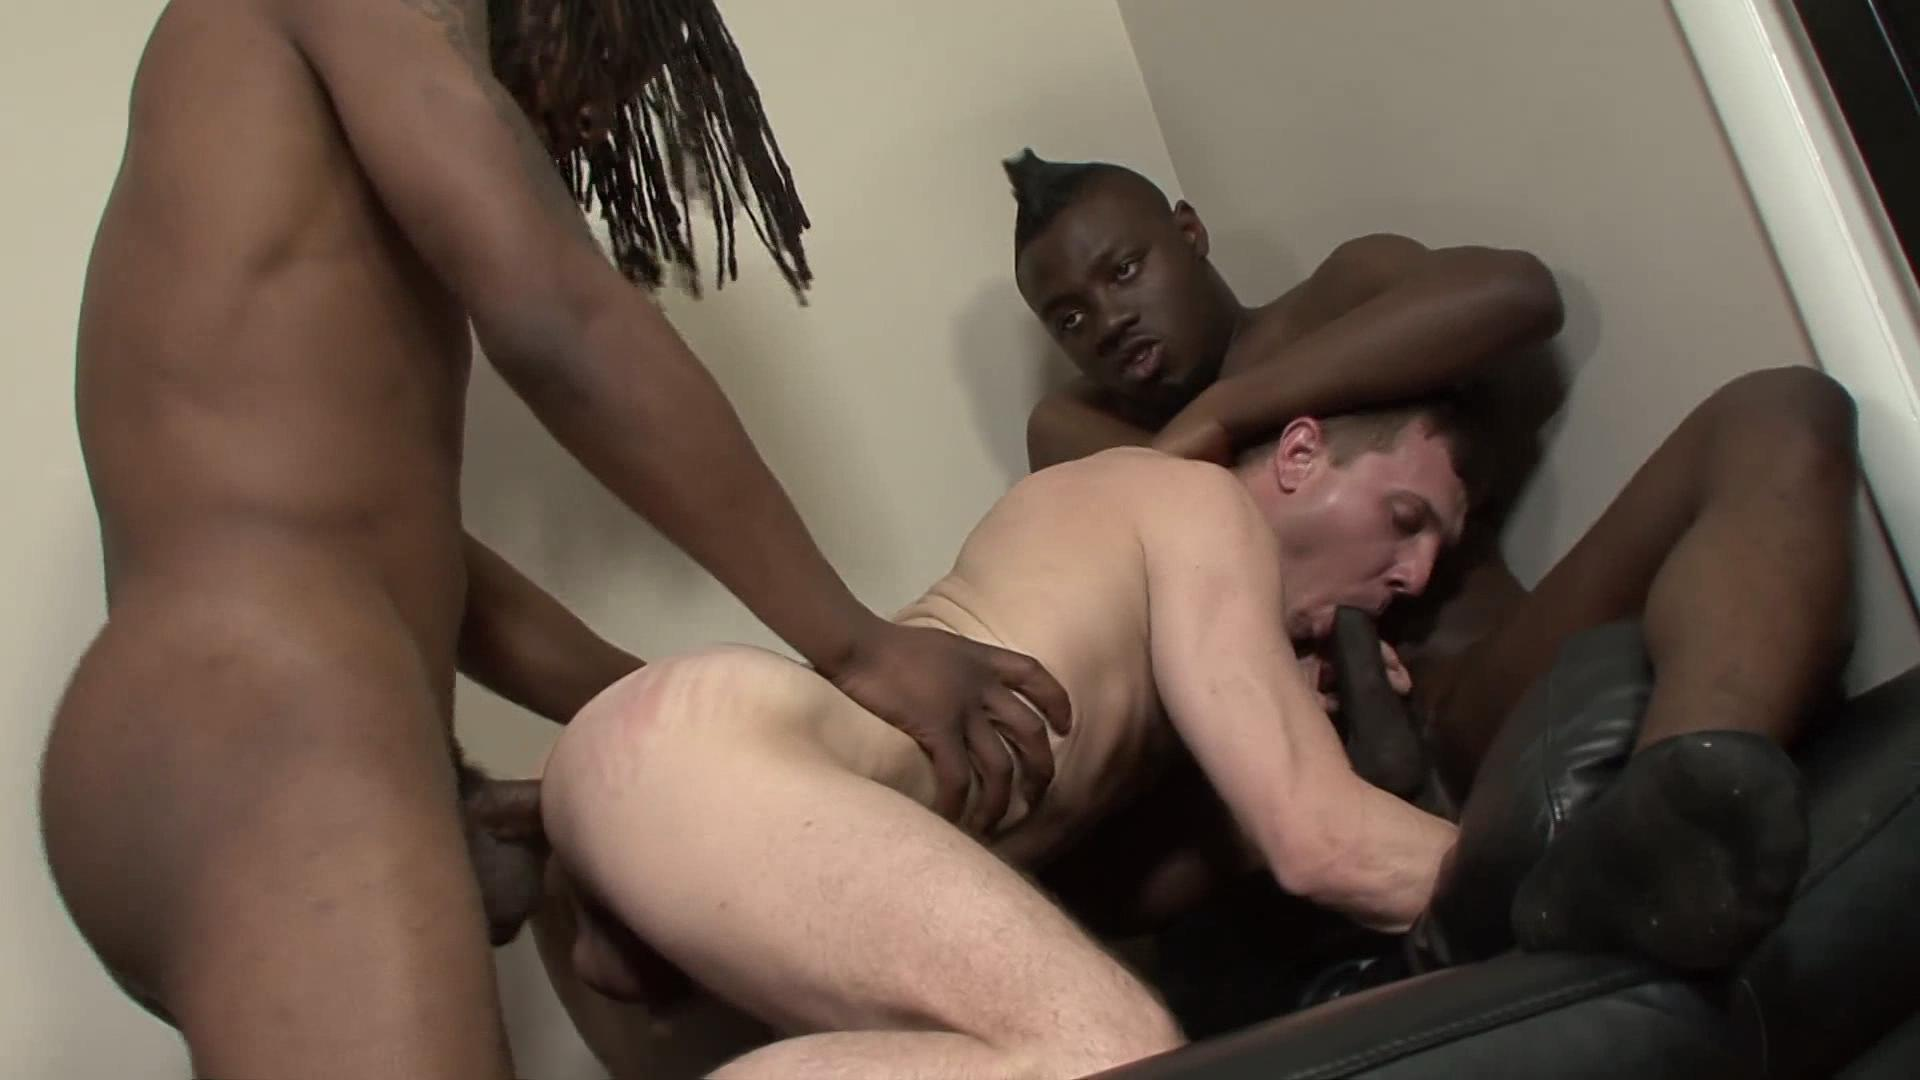 Interracial gay barebacking sex thumbnails